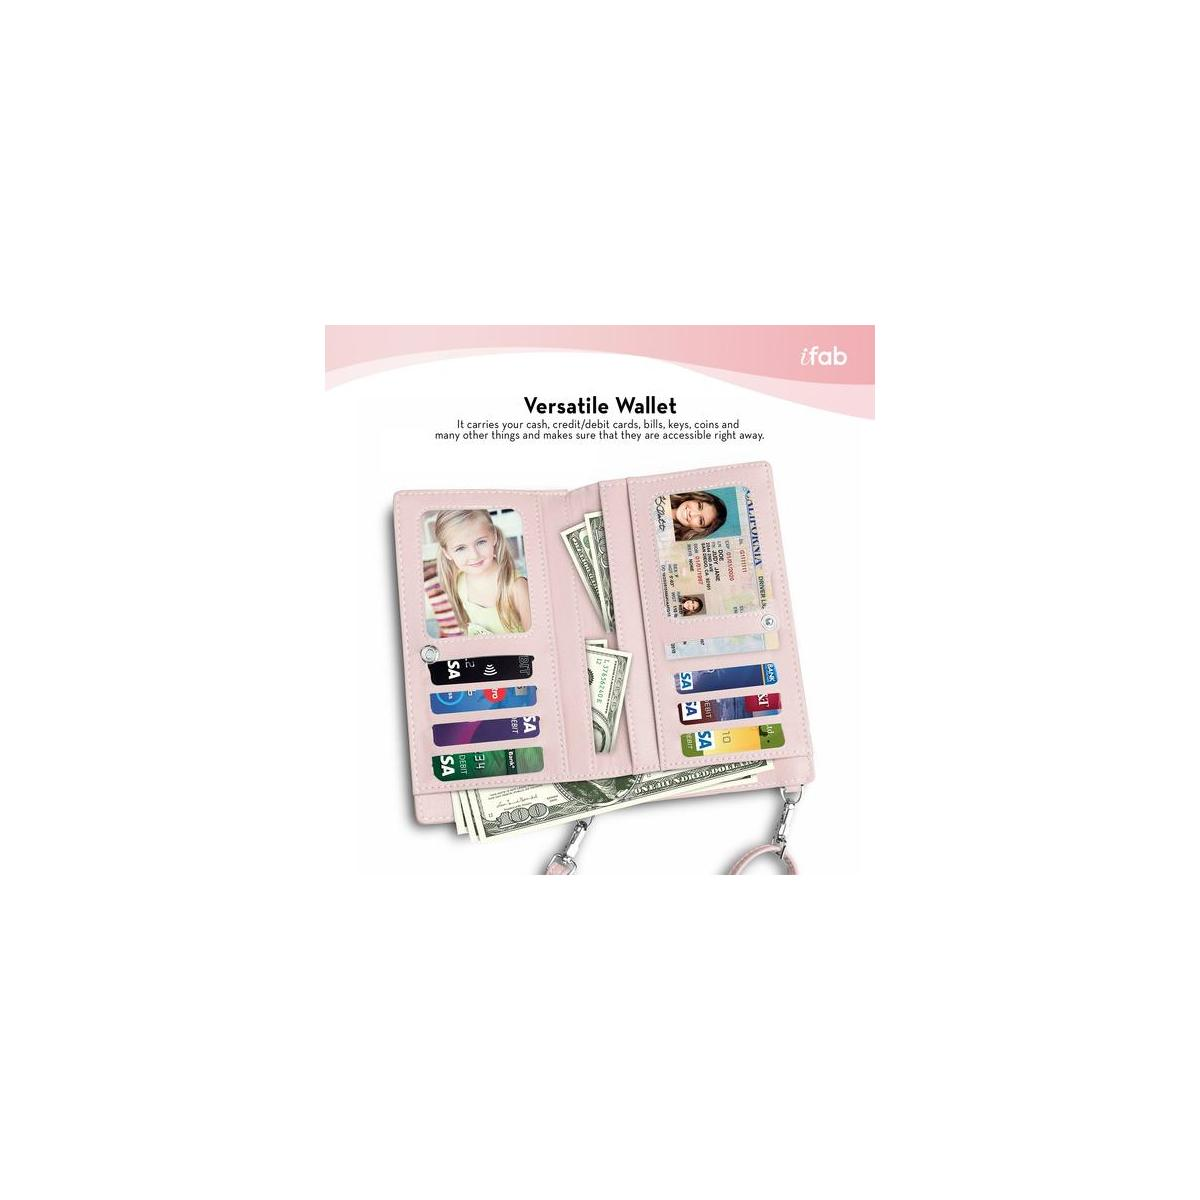 Small Crossbody Bag for Women, Cell Phone Purse Wallet with Credit Card Slots